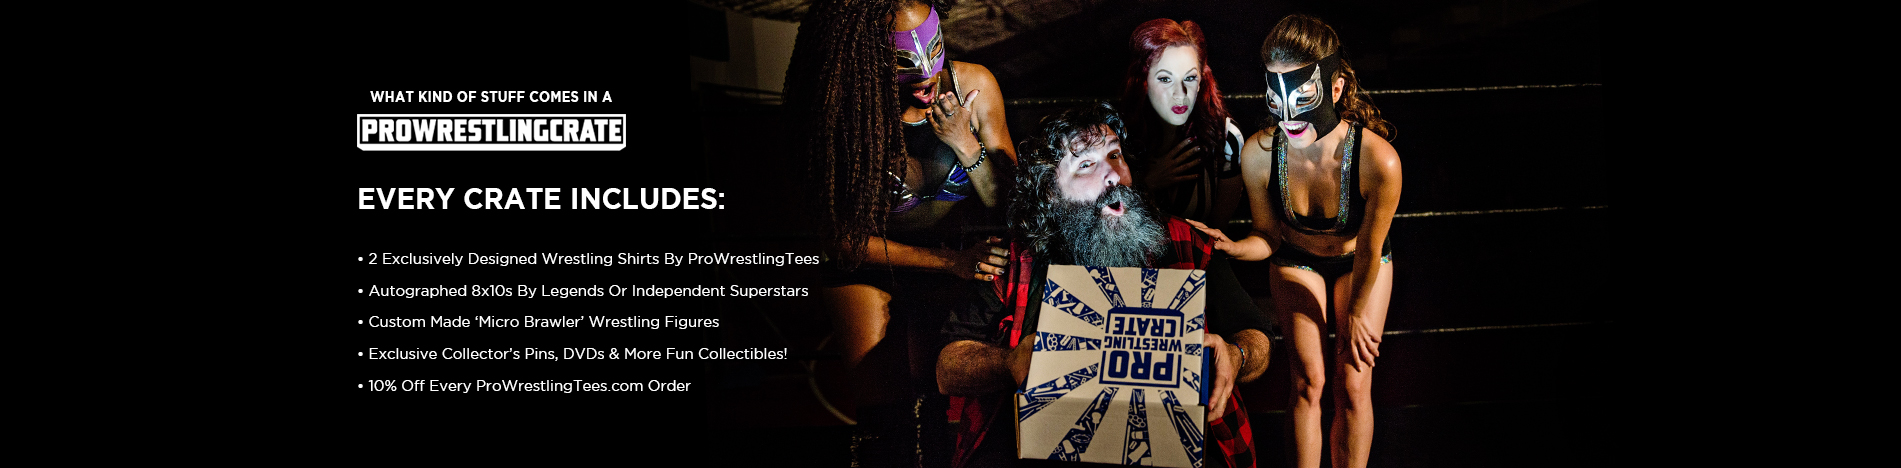 Pro Wrestling Crate | Exclusive Monthly Subscription Crates